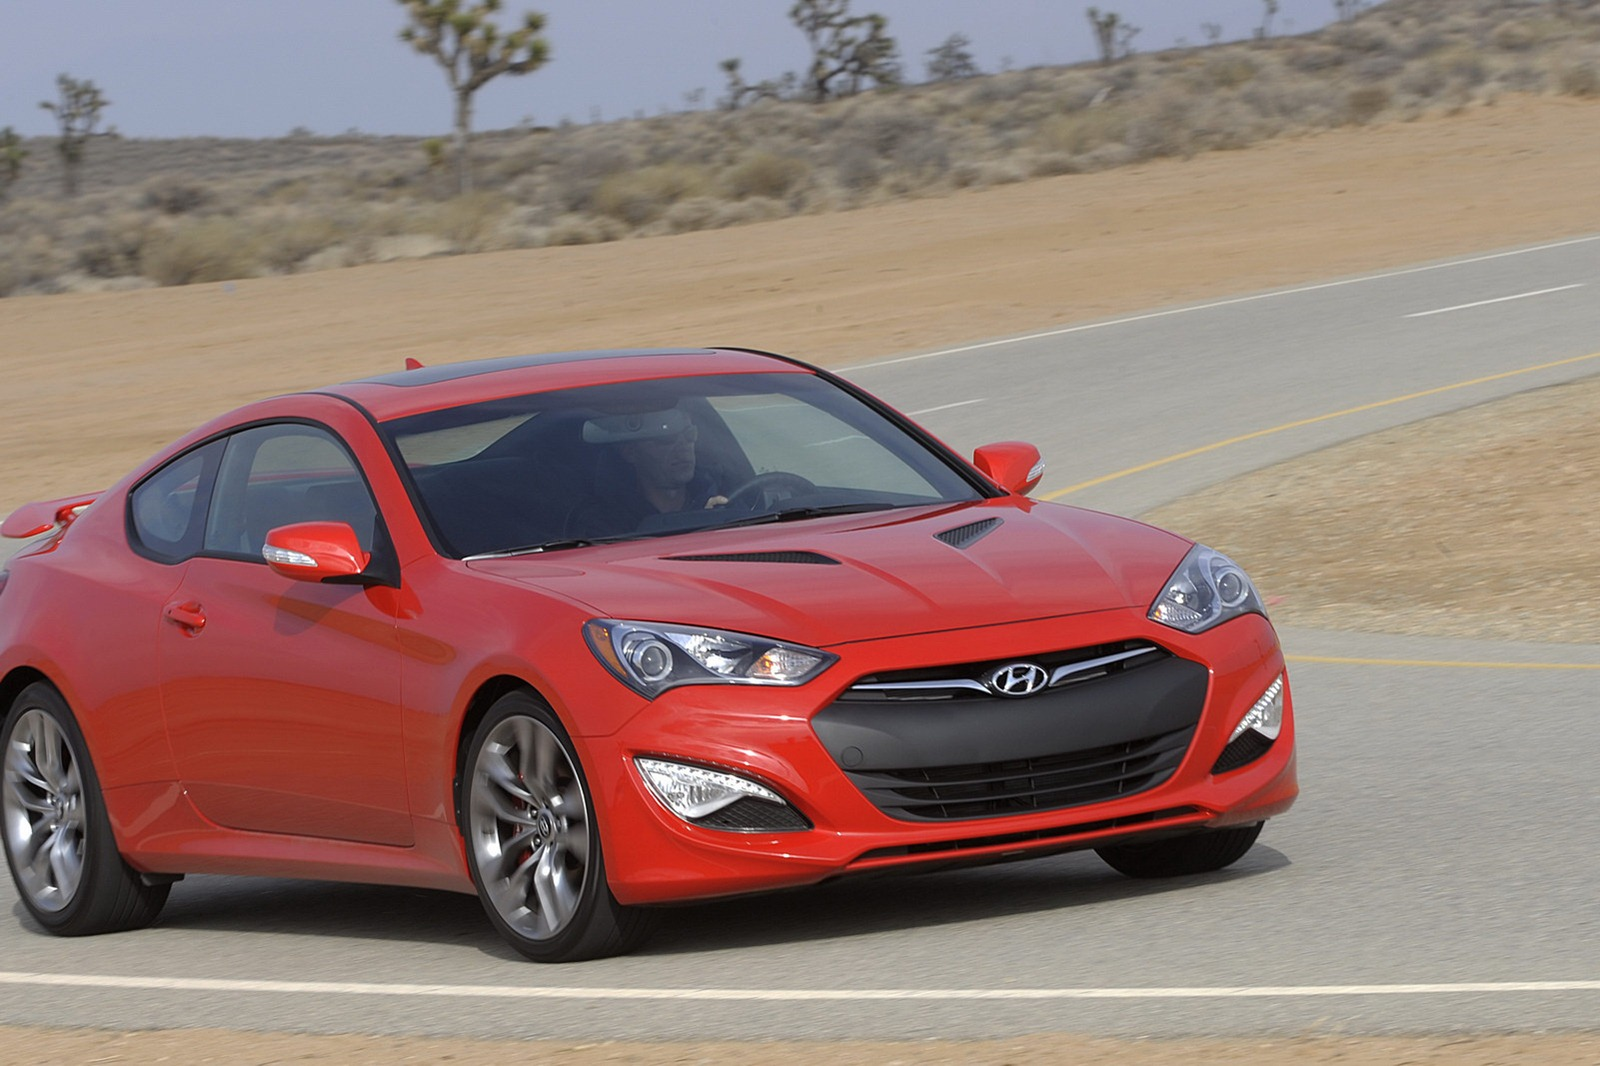 2013 hyundai genesis coupe makes its u s debut gets 348hp v6 and 274hp 2 0l turbo videos. Black Bedroom Furniture Sets. Home Design Ideas